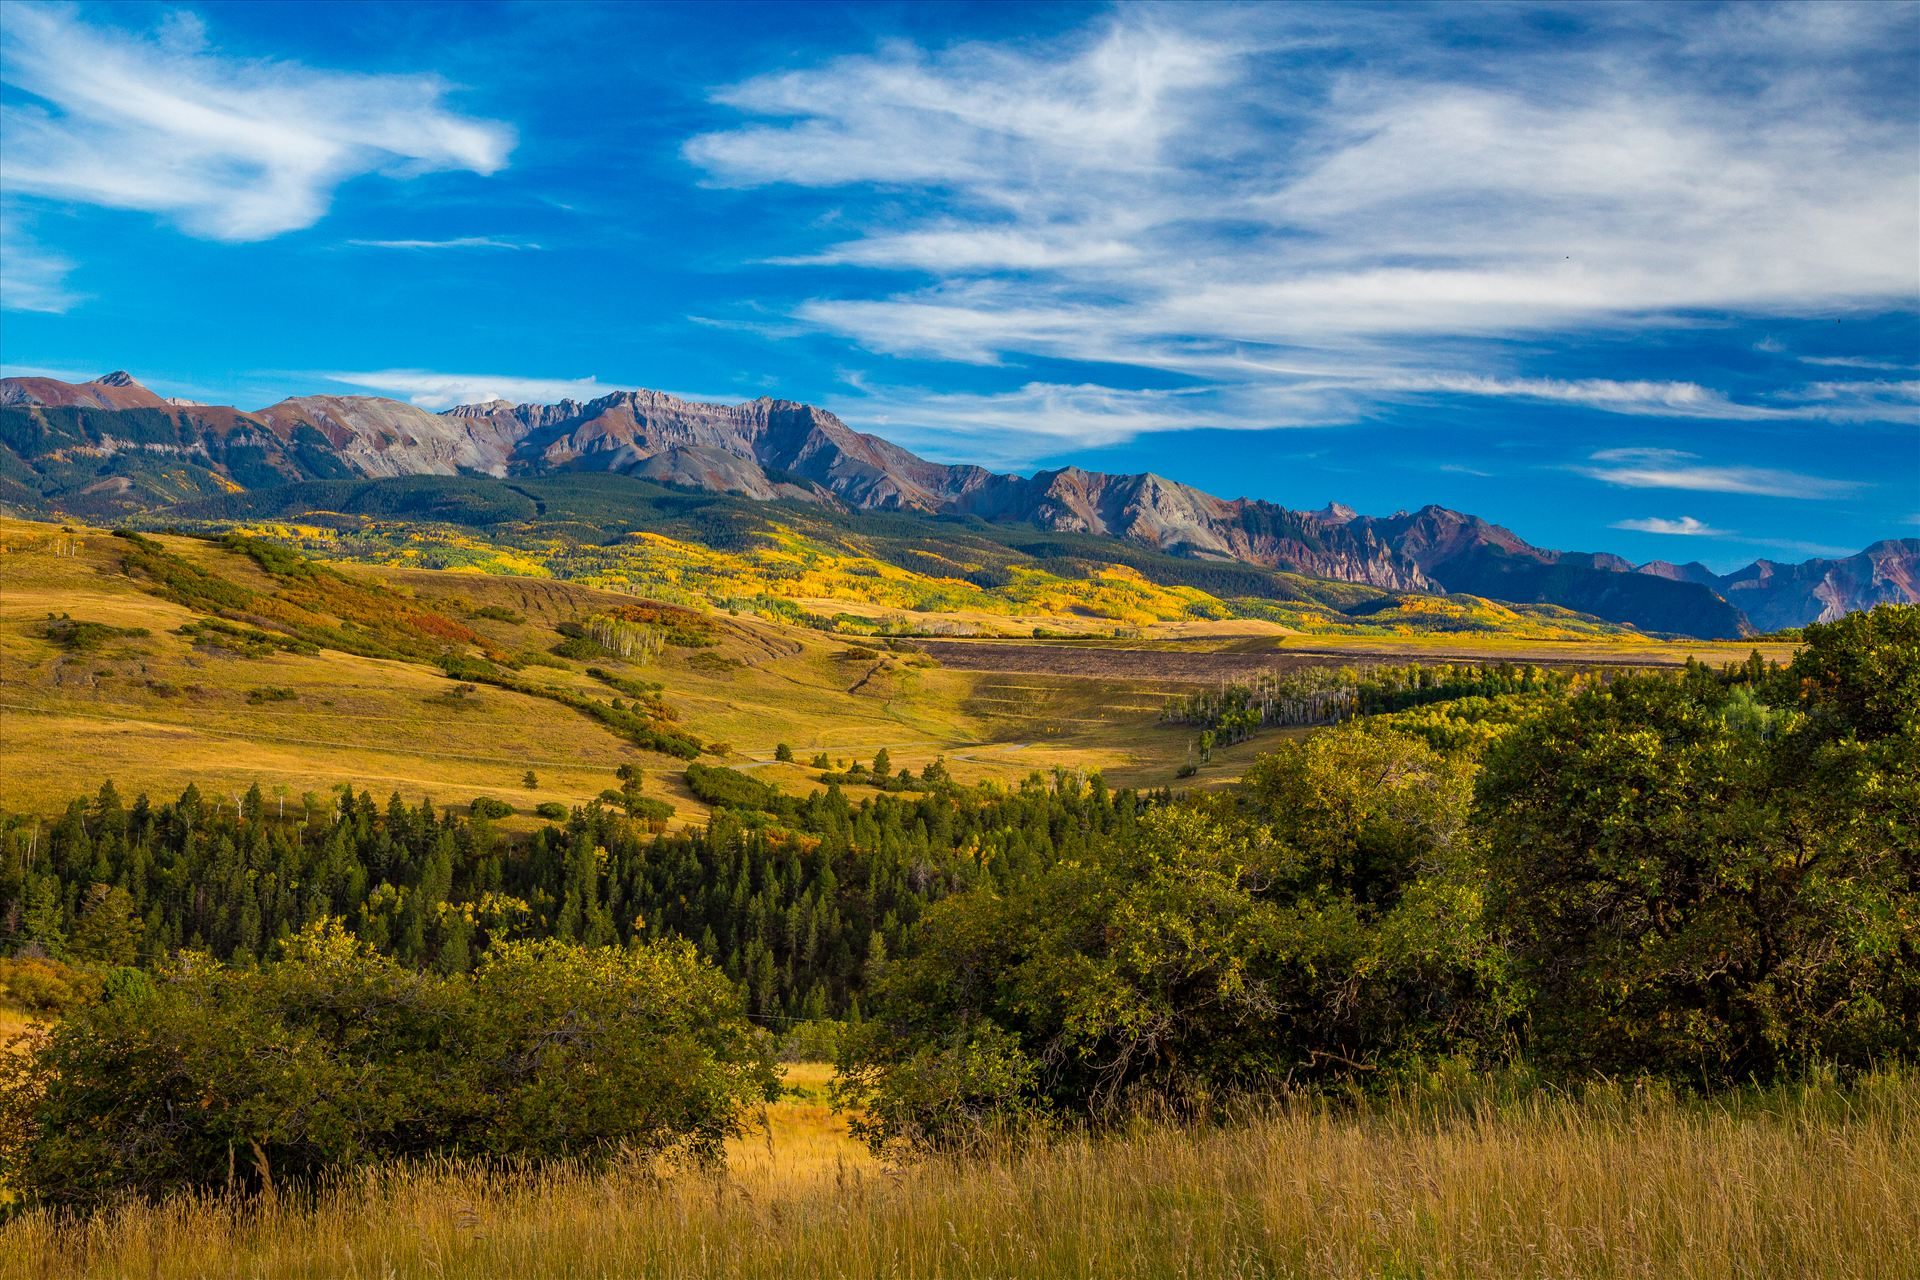 Last Dollar Road 2 From Last Dollar Road looking towards the San Joquin Range, the area around Telluride explodes with fall colors. by Scott Smith Photos